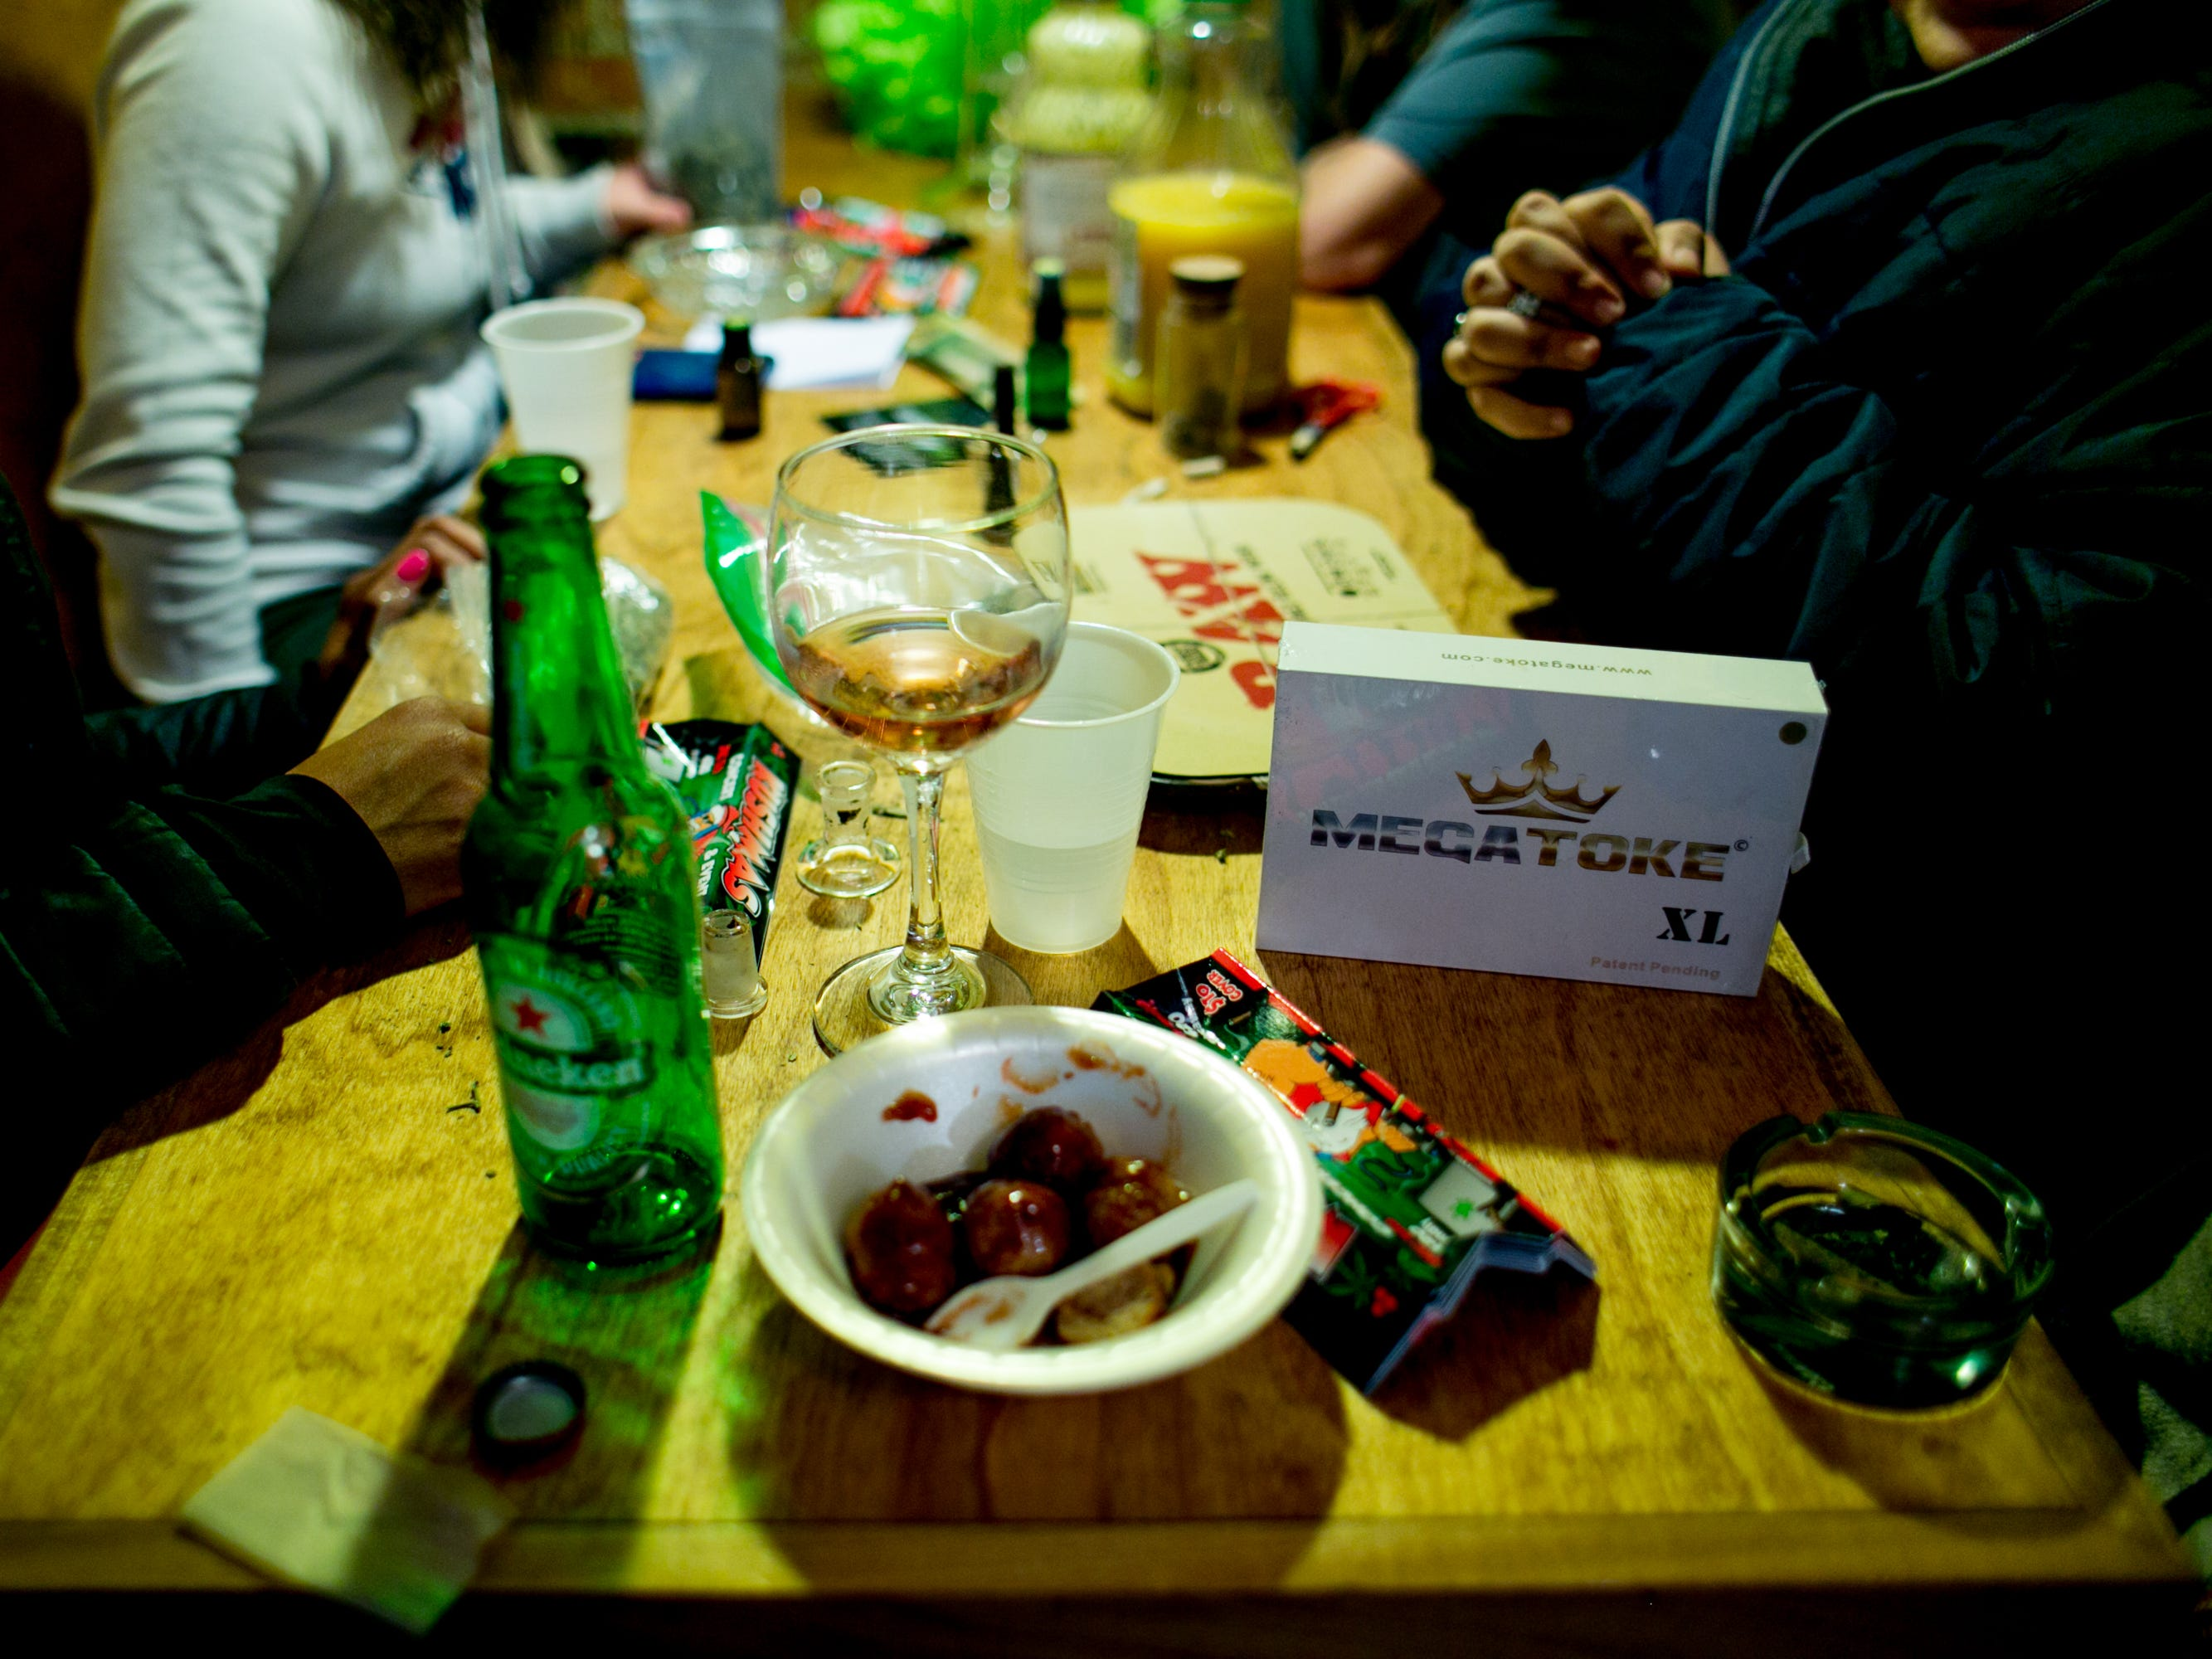 Pot paraphernalia is seen at the party.